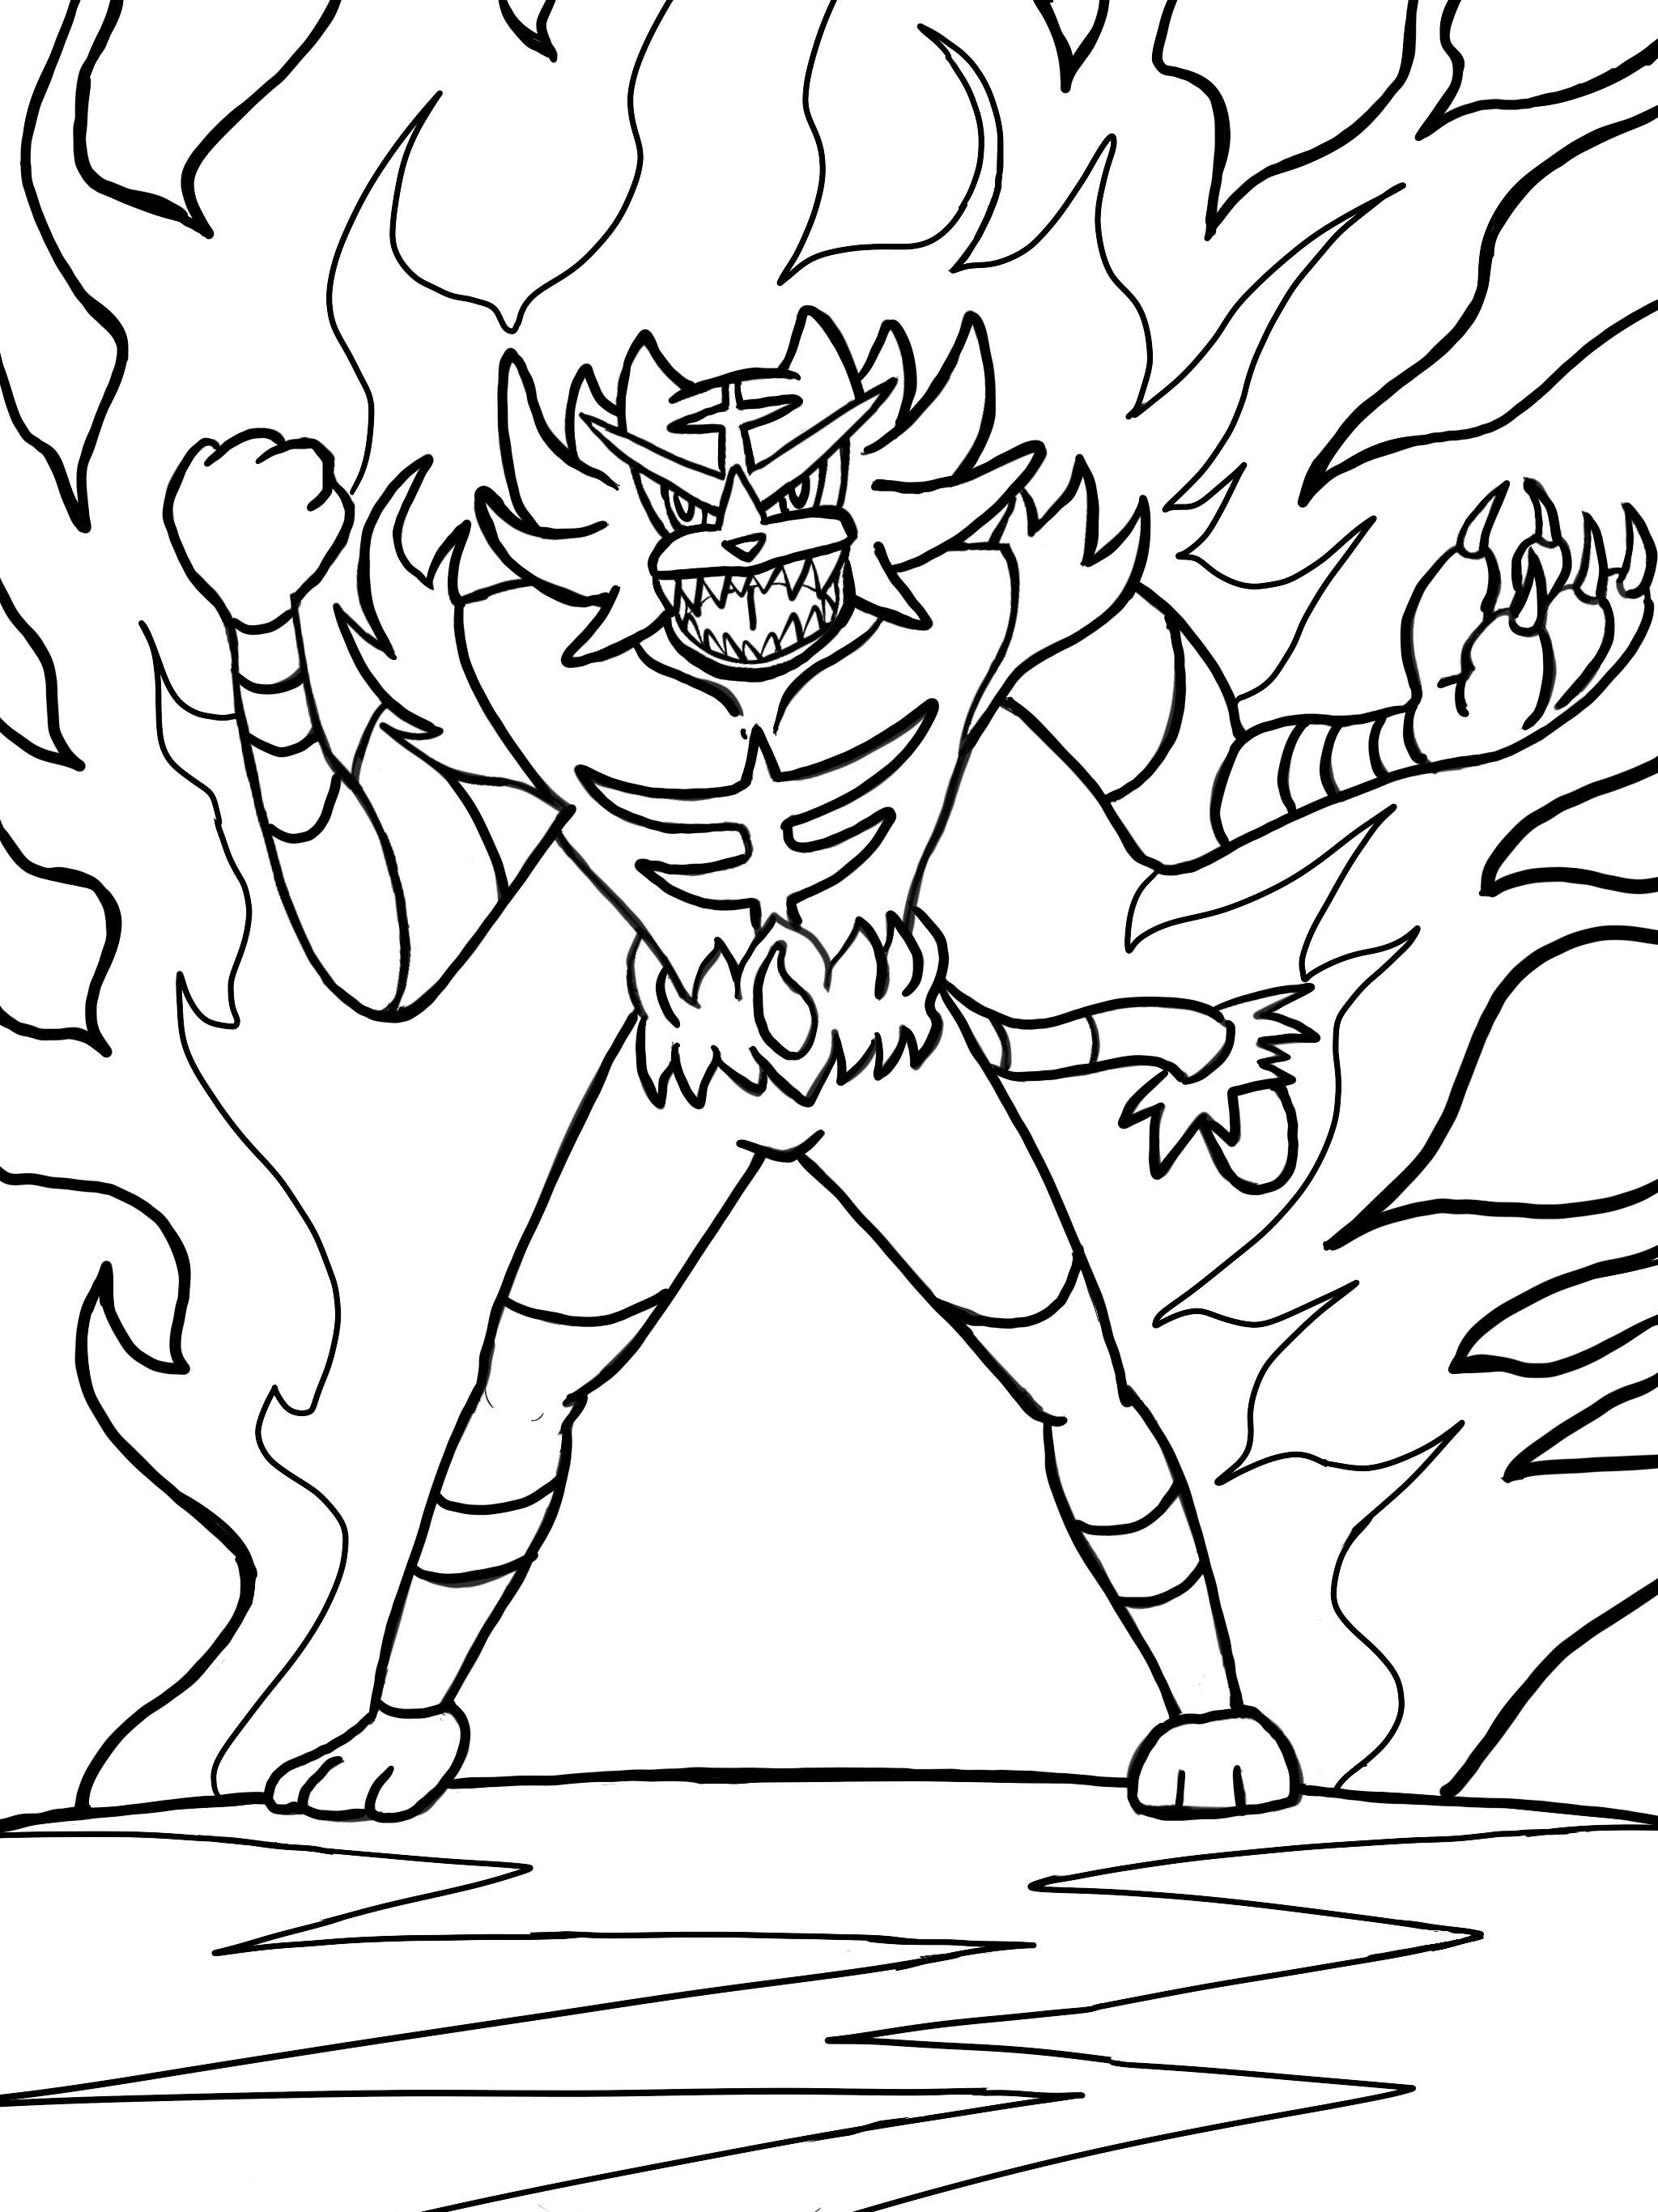 Pokemon Incineroar Coloring Pages Through The Thousands Of Pictures On Line About Pokemon Moon Coloring Pages Pokemon Coloring Pages Superhero Coloring Pages